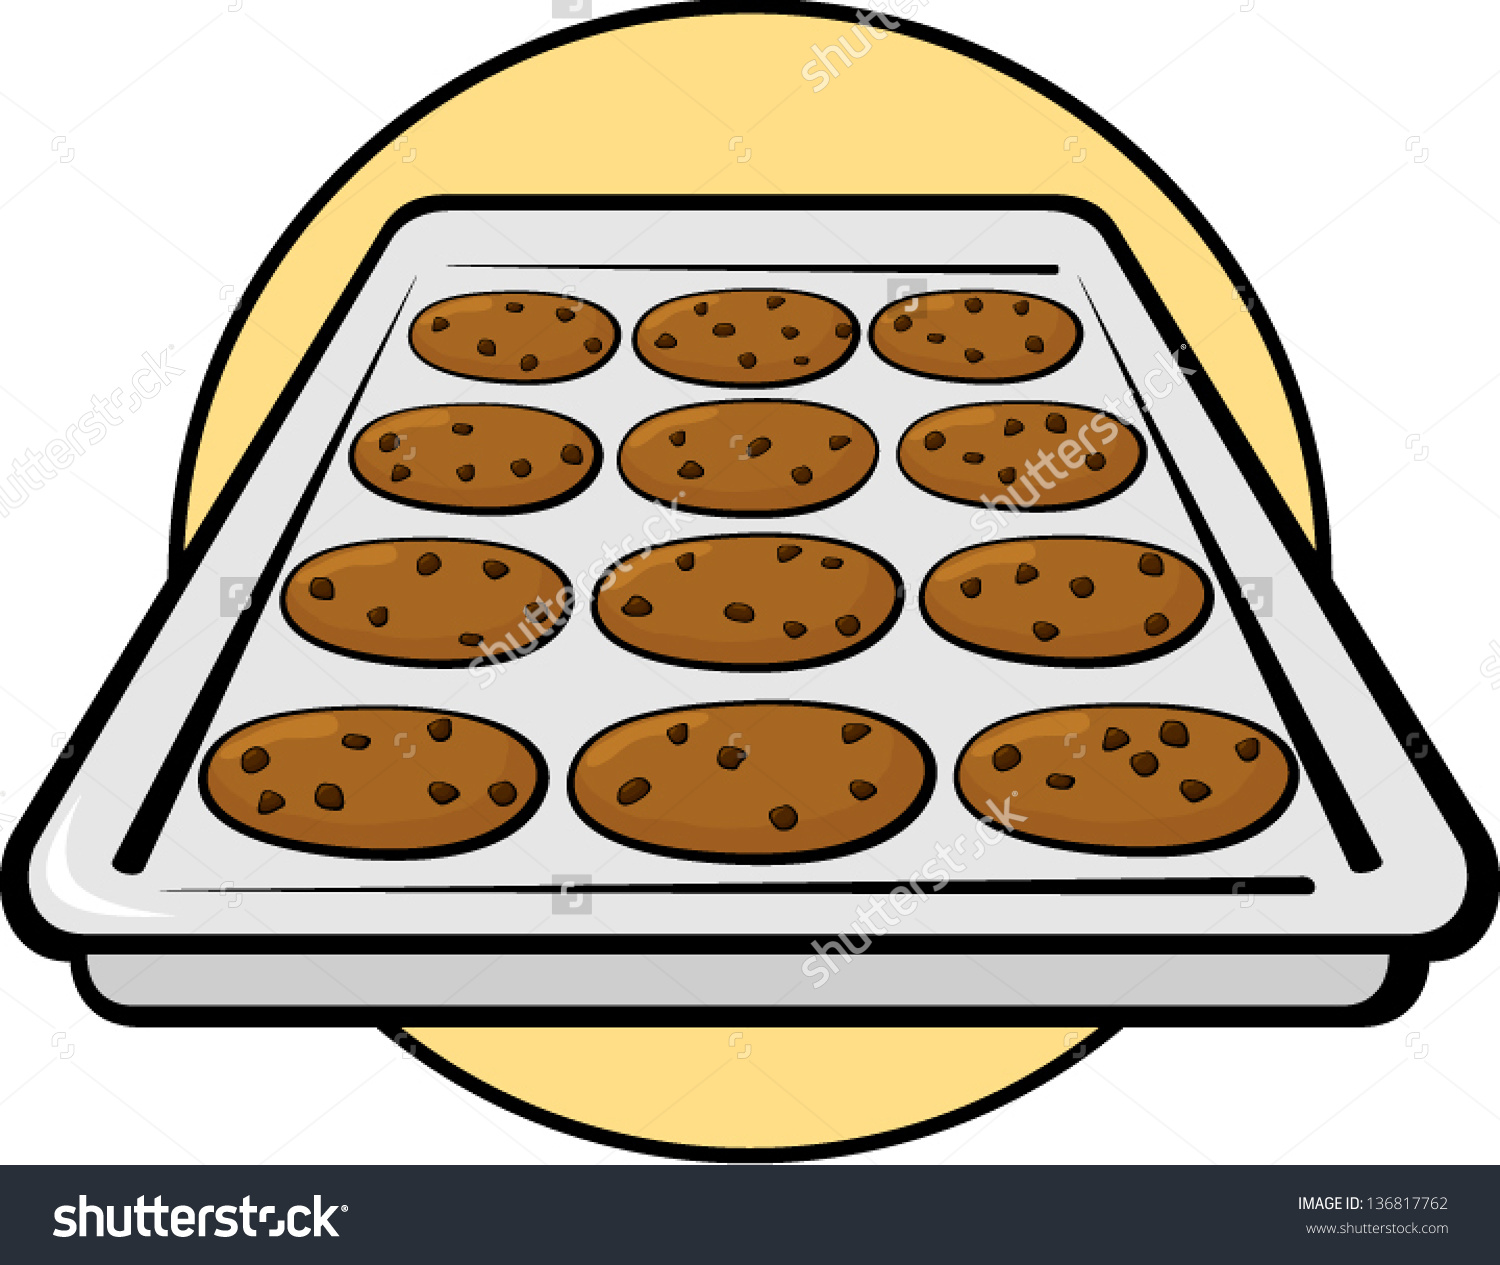 Baking sheet food clipart. Clipartfest cookies in pan